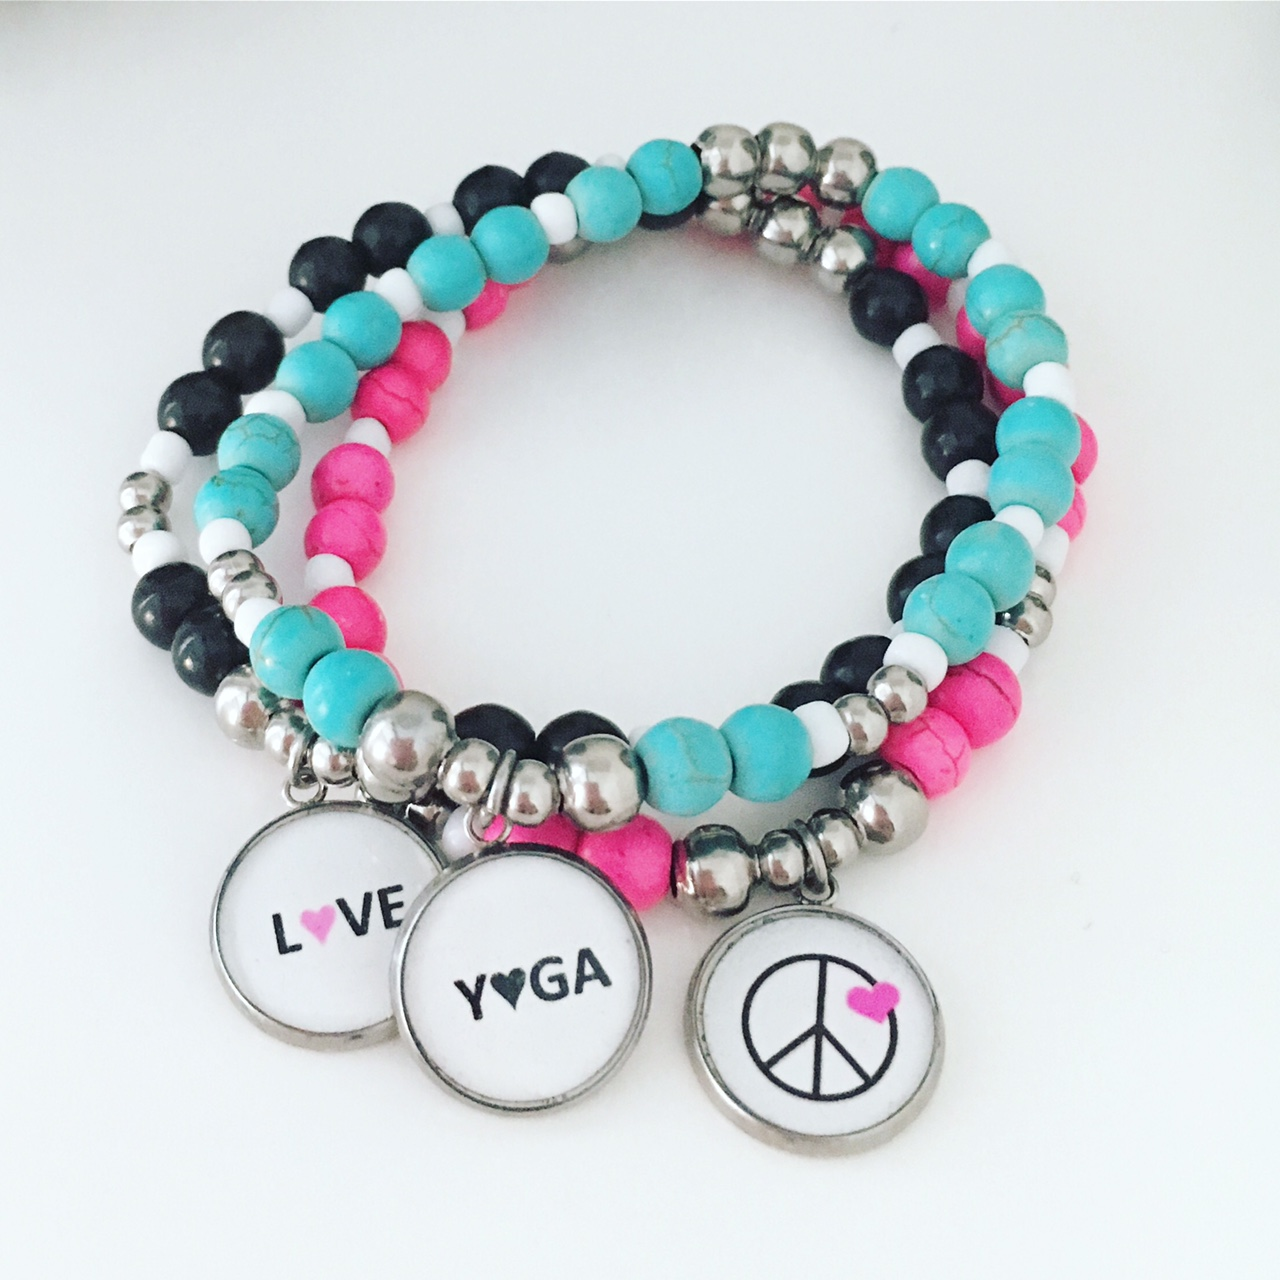 Peca_Love_Yoga_MIX1